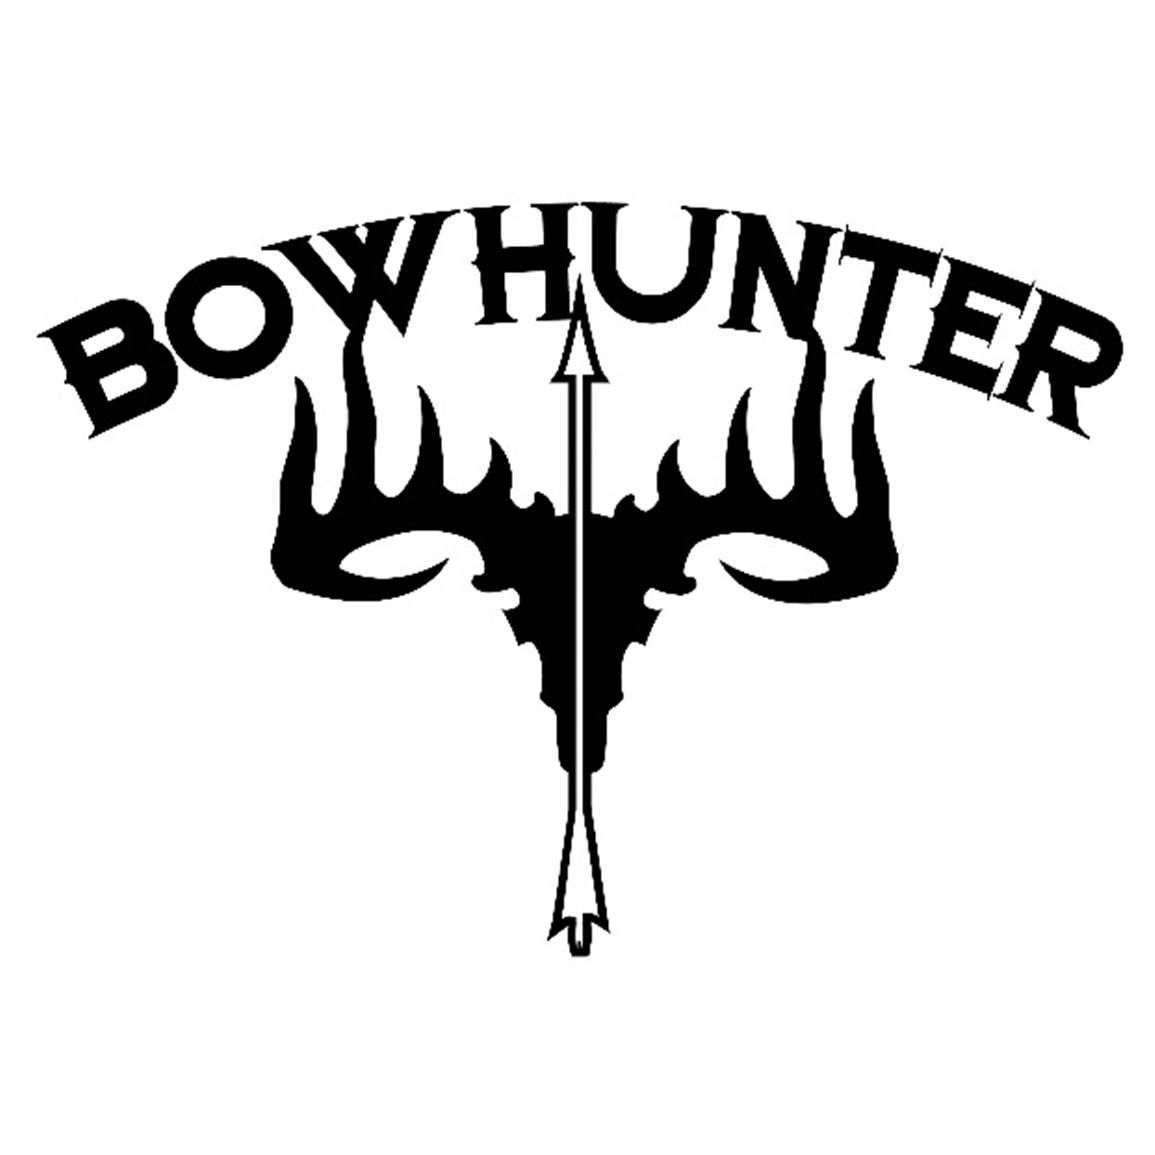 ... clipart bow hunting logos duck hunting clipart bass fishing clipart